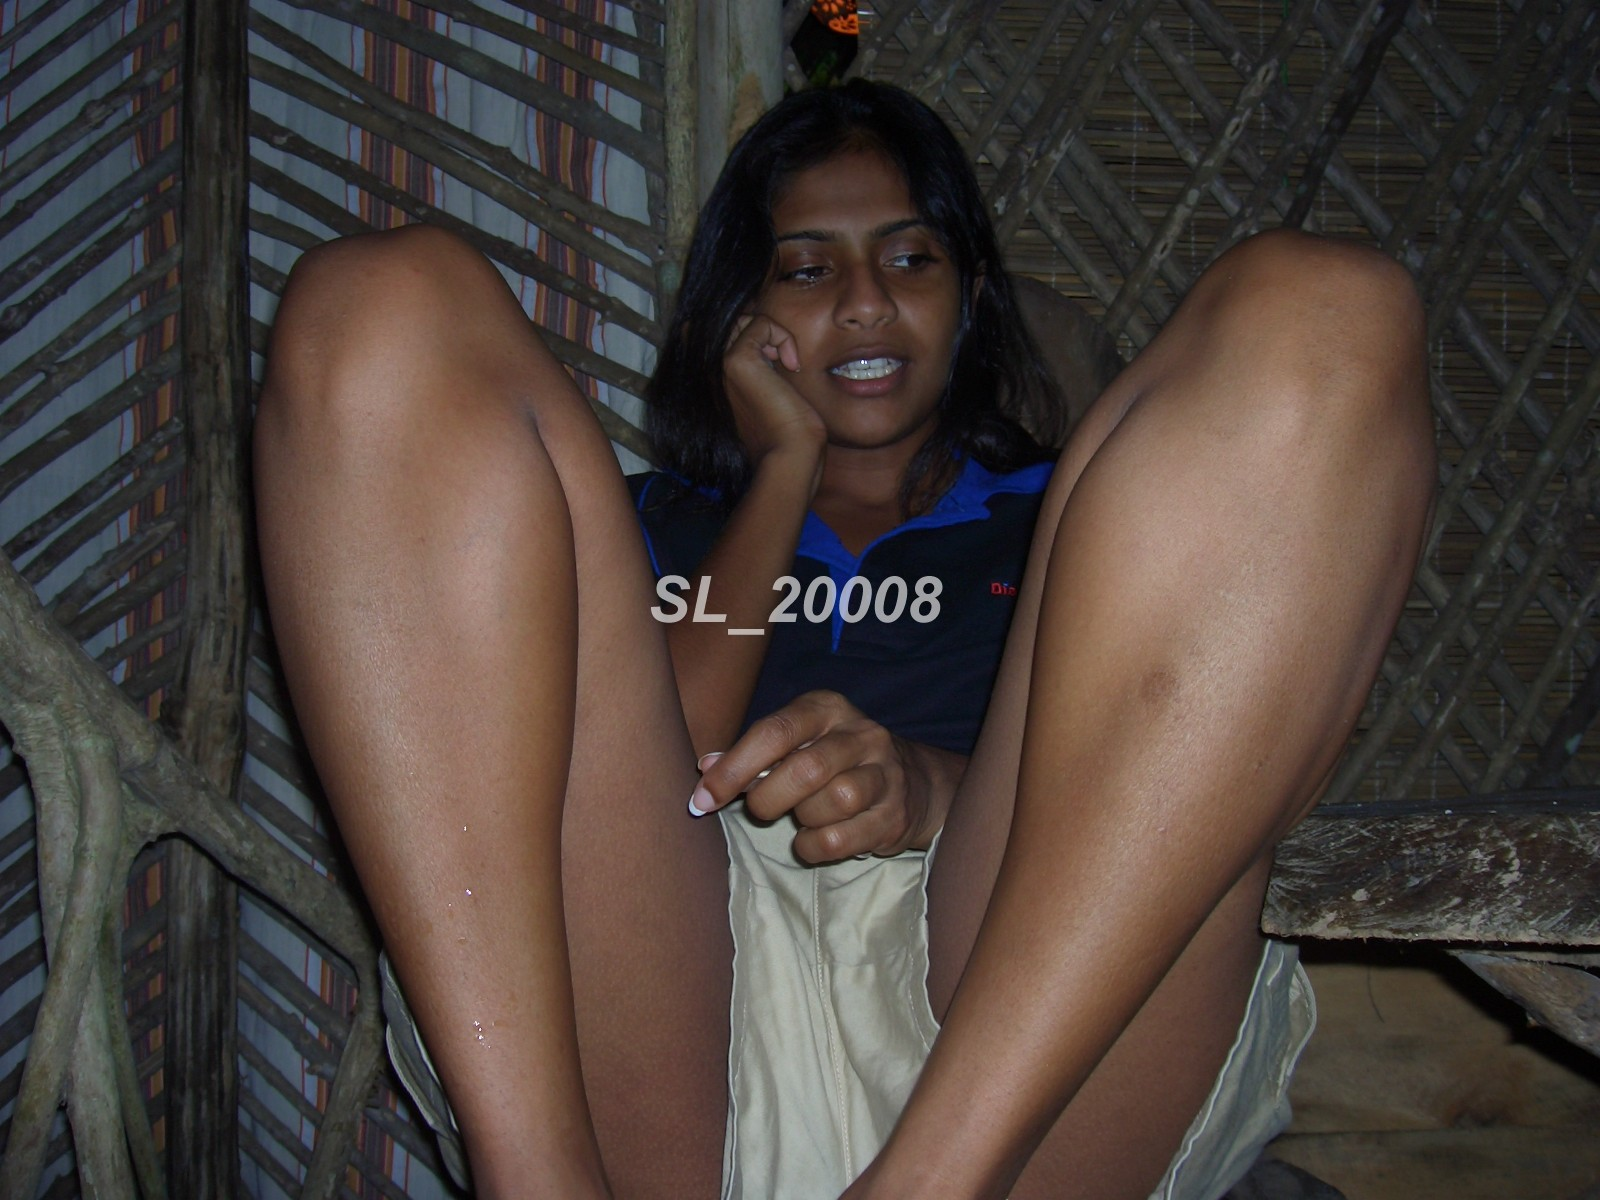 anal-sri-lankan-bitch-fucked-and-half-naked